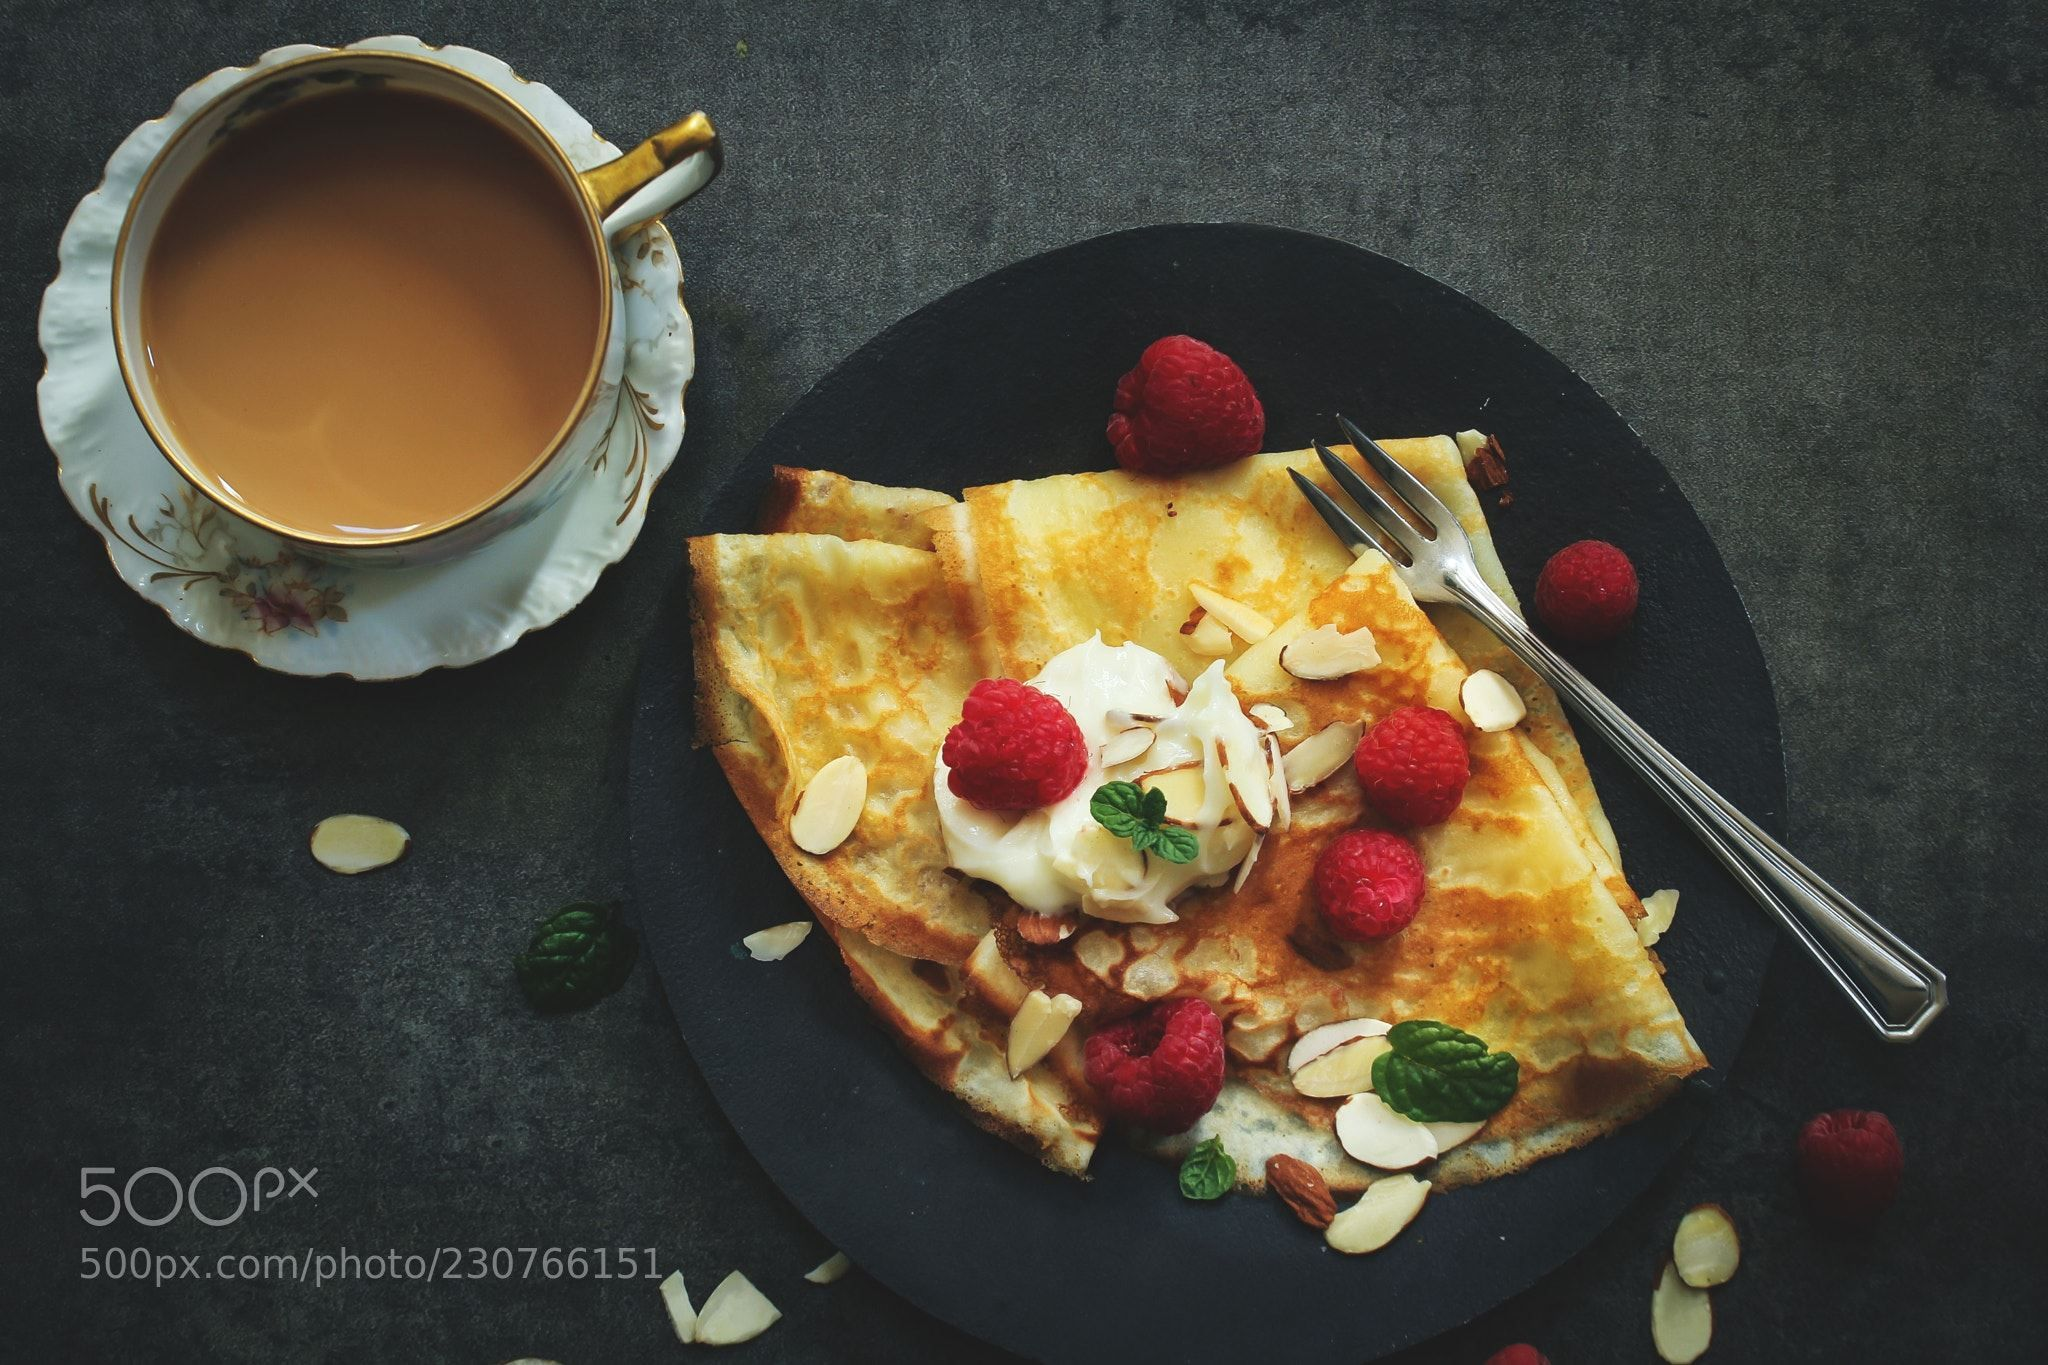 French Breakfast Crepes served with Raspberries  on dark moody background,Top Down view (Vrinda Mahesh / West Chester / USA) #Canon EOS 60D #food #photo #delicious